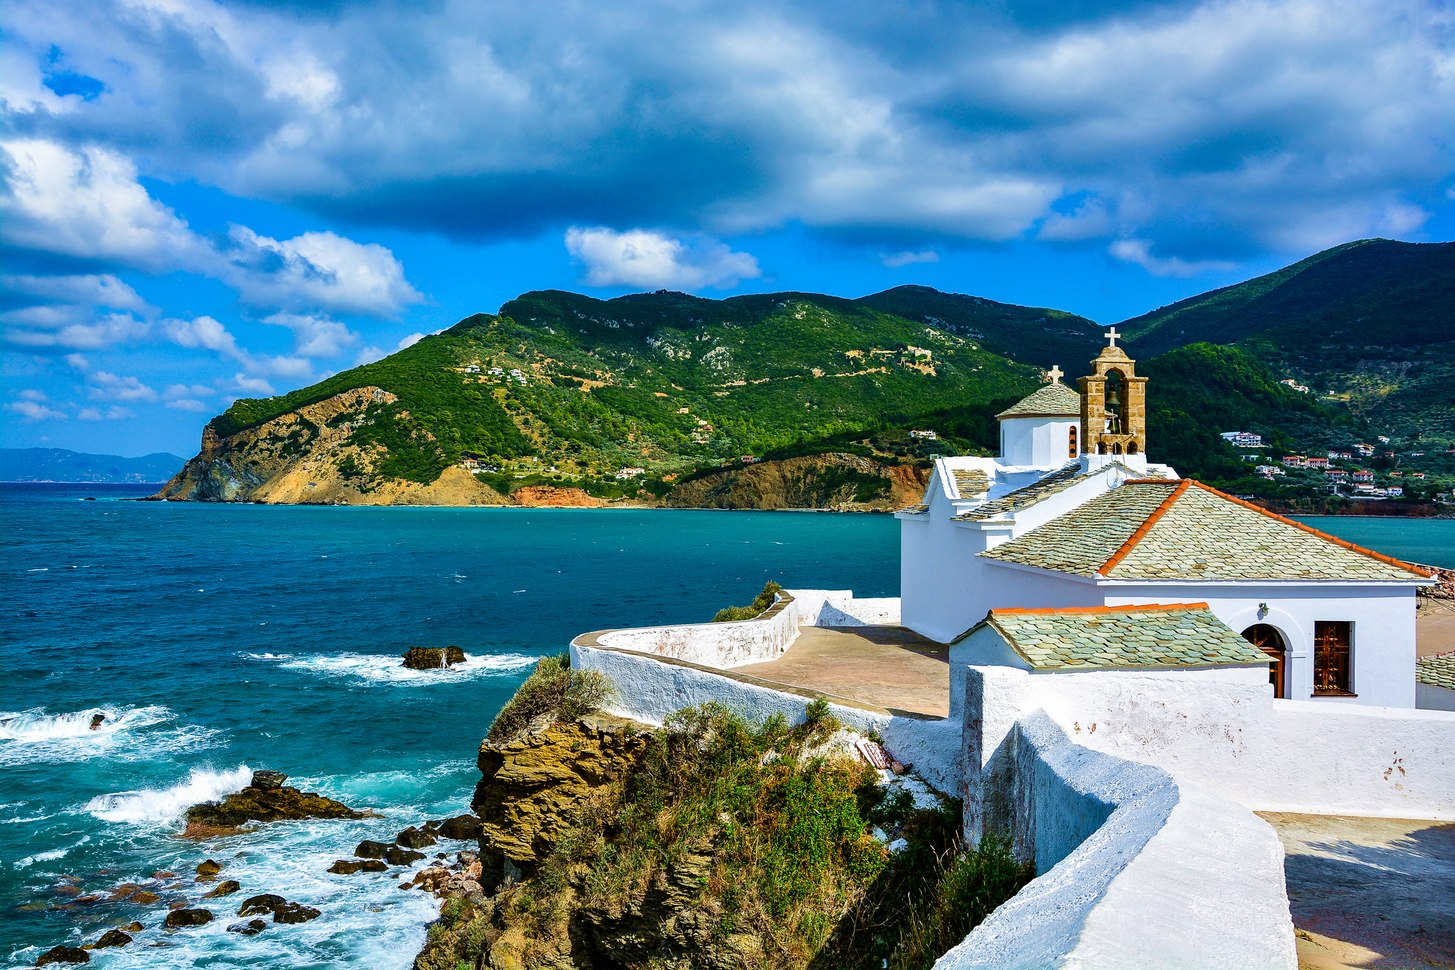 Discovering Skopelos: The World's Secret Superyacht Hotspot